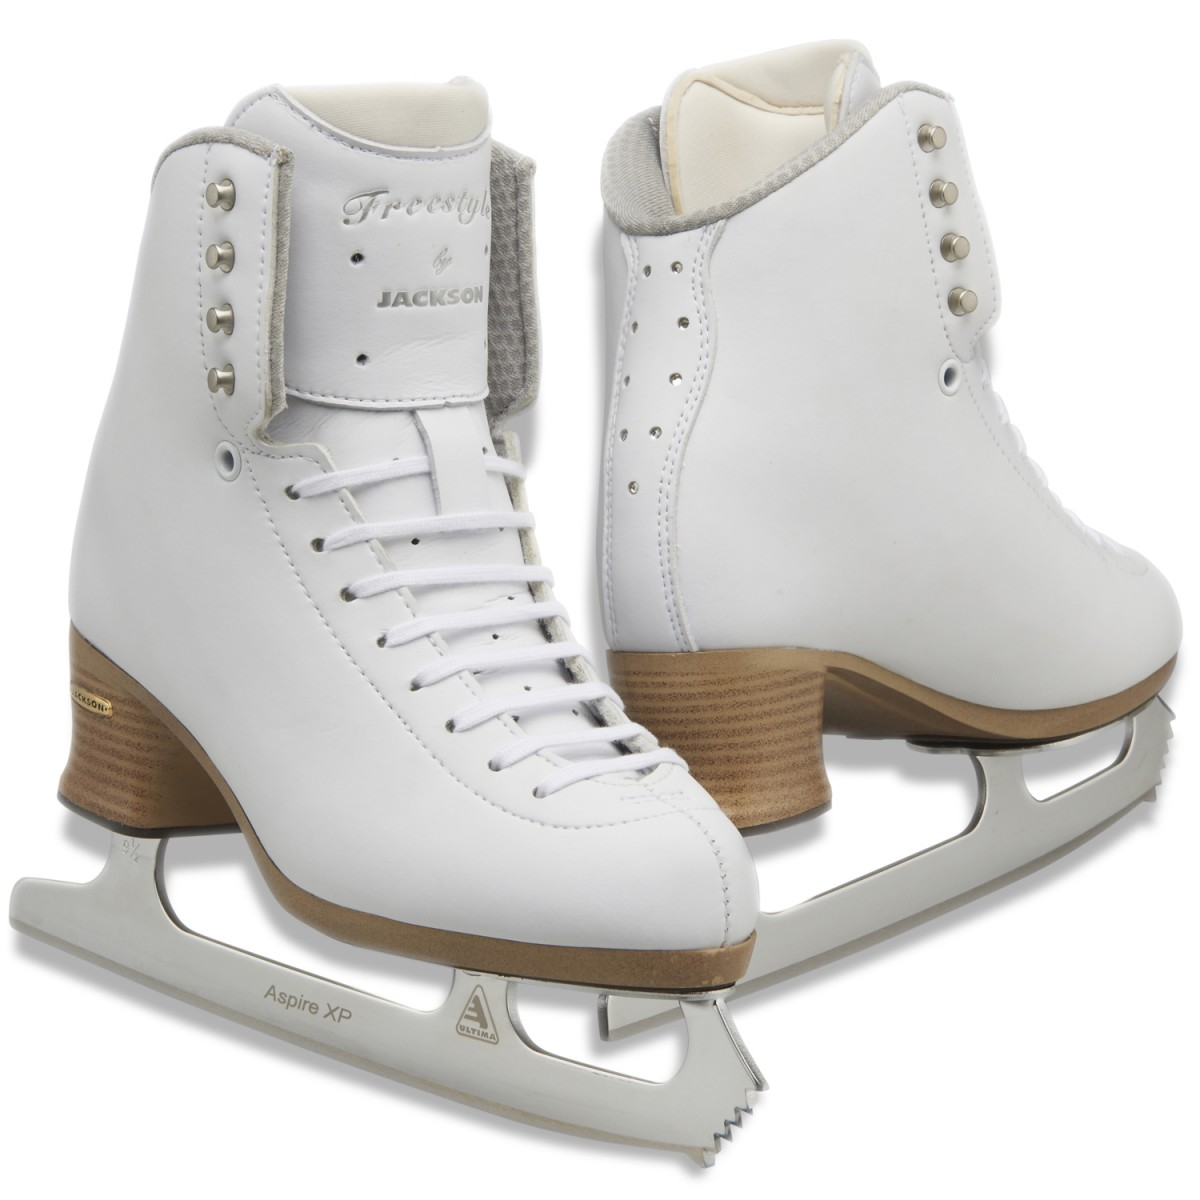 *NEW* Jackson Freestyle Fusion with AspireXP Blade Figure Skates